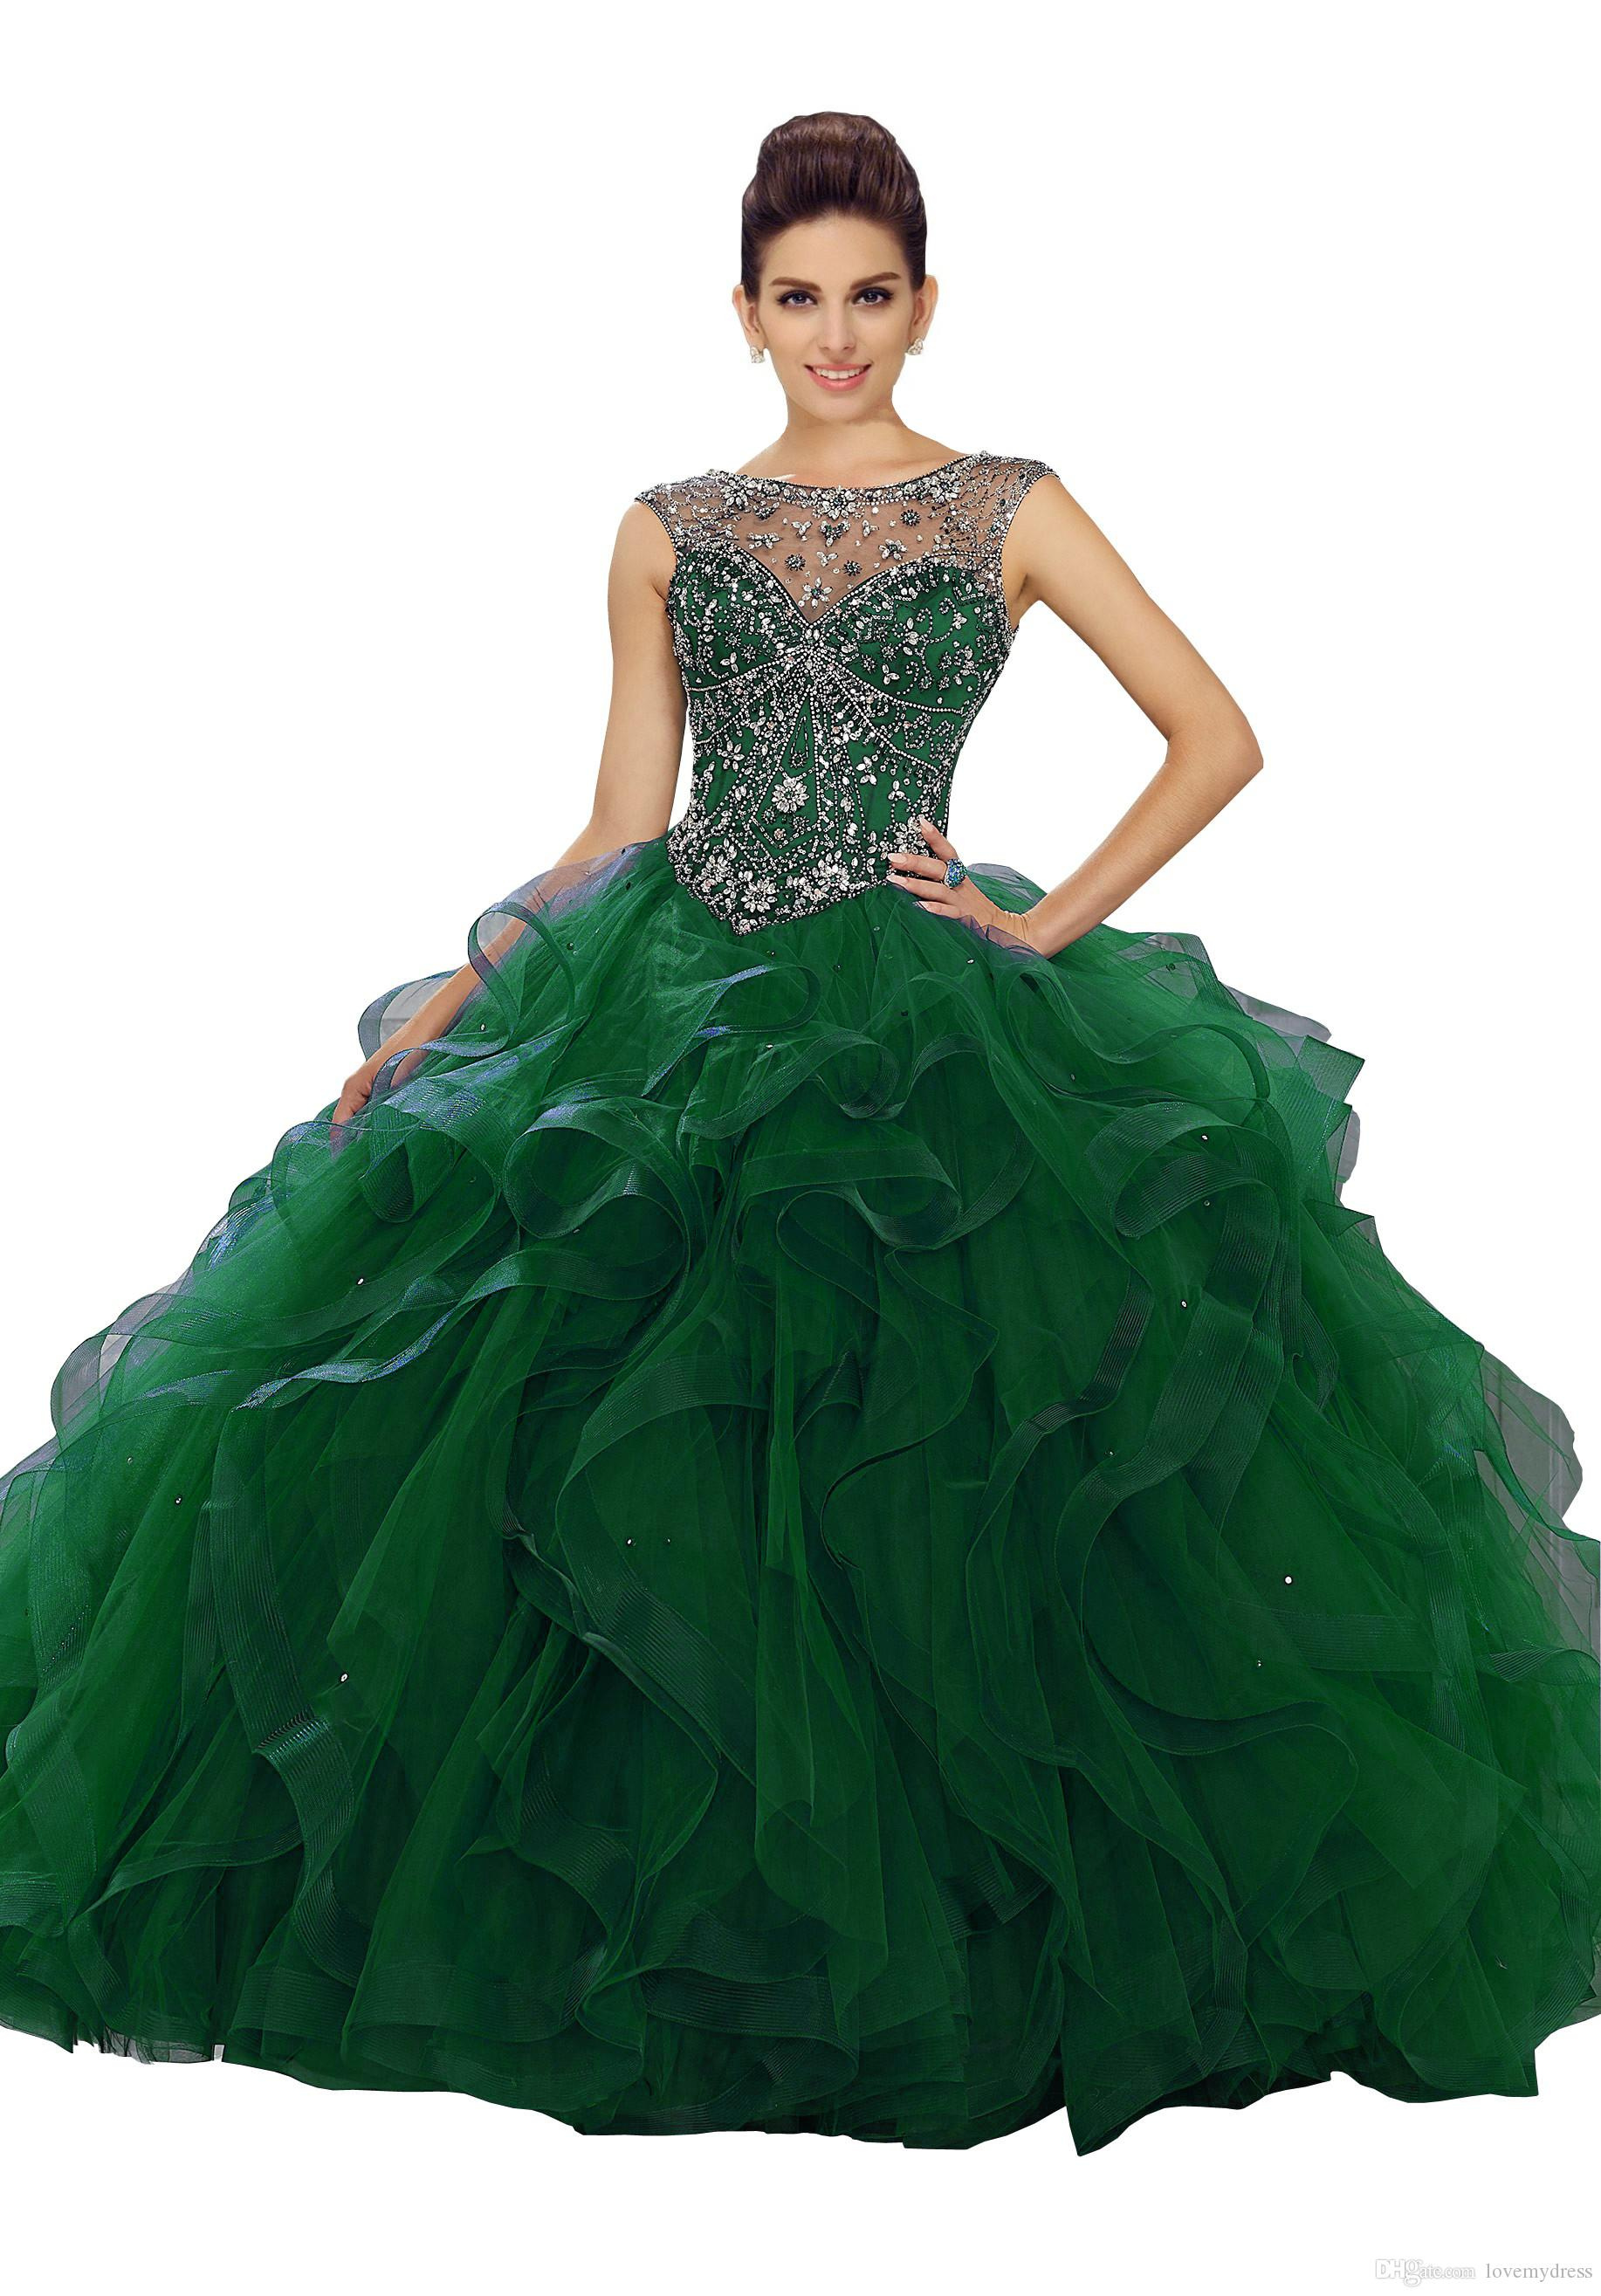 42eddb1aac4 Exquisite Green Quinceanera Prom Dress Ball Gowns Ruffles Tulle Cap Short  Sleeves Bateau Sheer Neck Crystal Beaded Hollow Back Evening Gowns Dresses  For ...